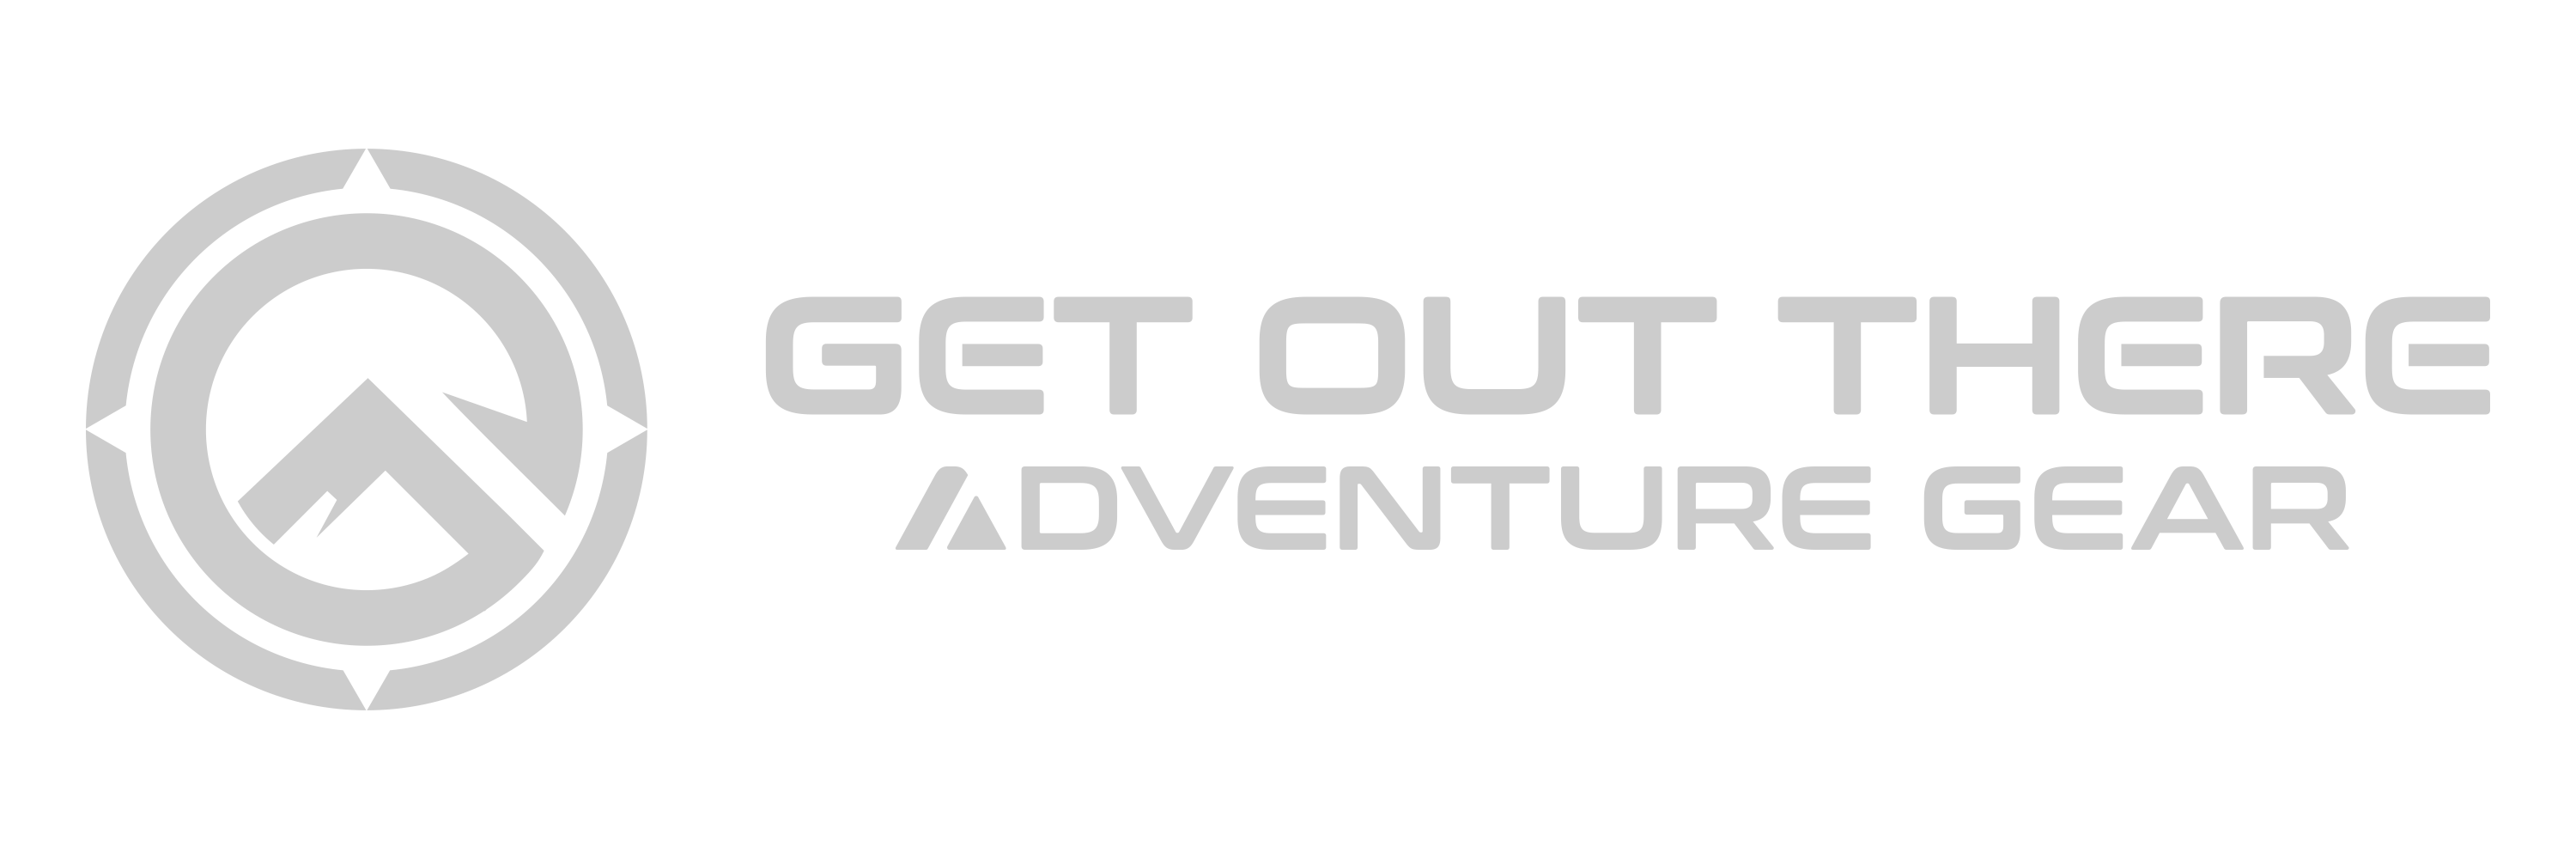 Adventure Company startup needs a simple, exciting logo